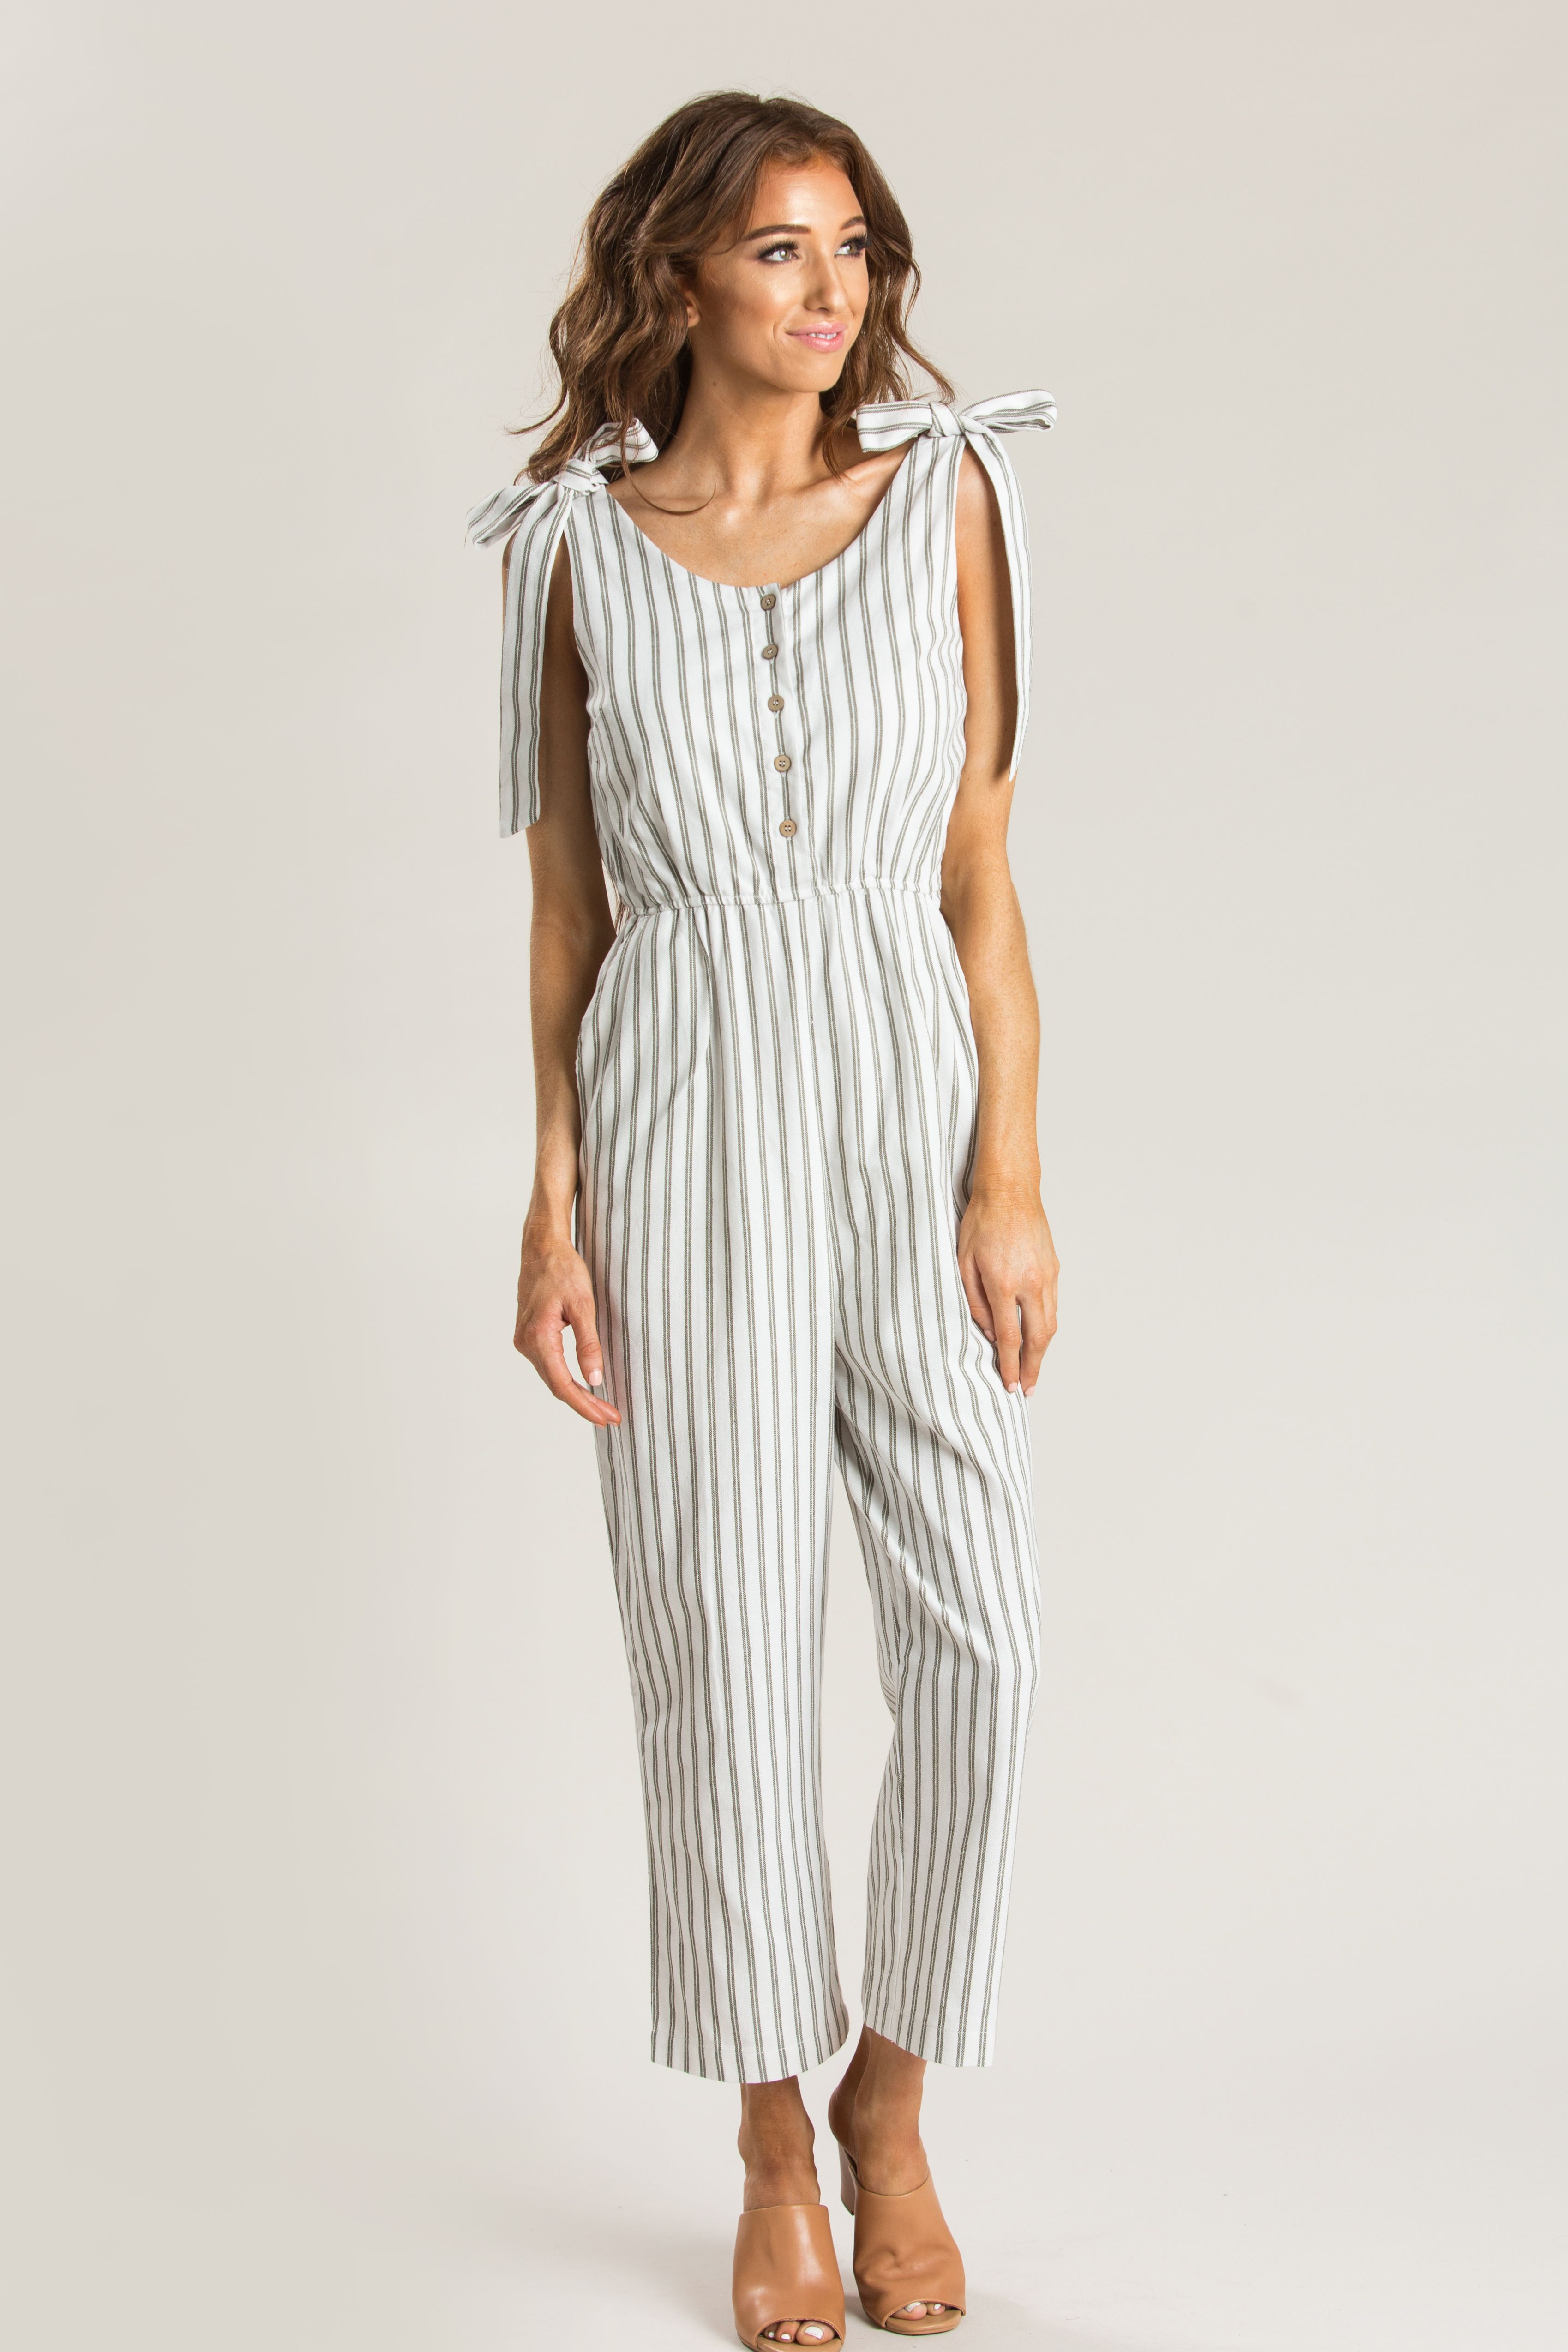 a26827debc5 Hazel Olive Striped Jumpsuit Casual Date Nights